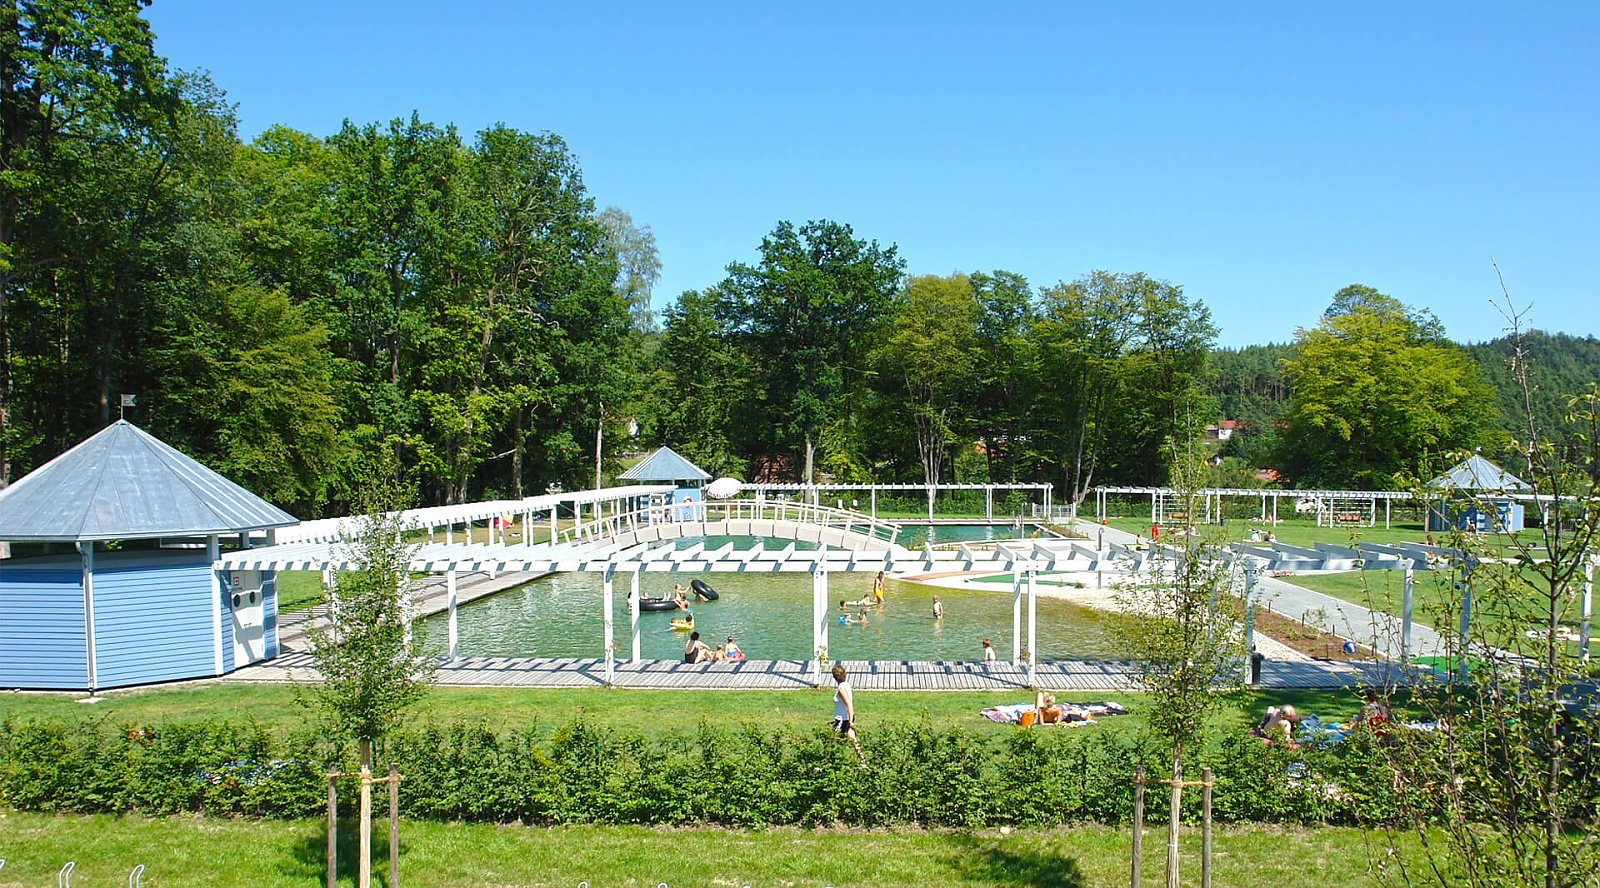 Naturbad Stamsried